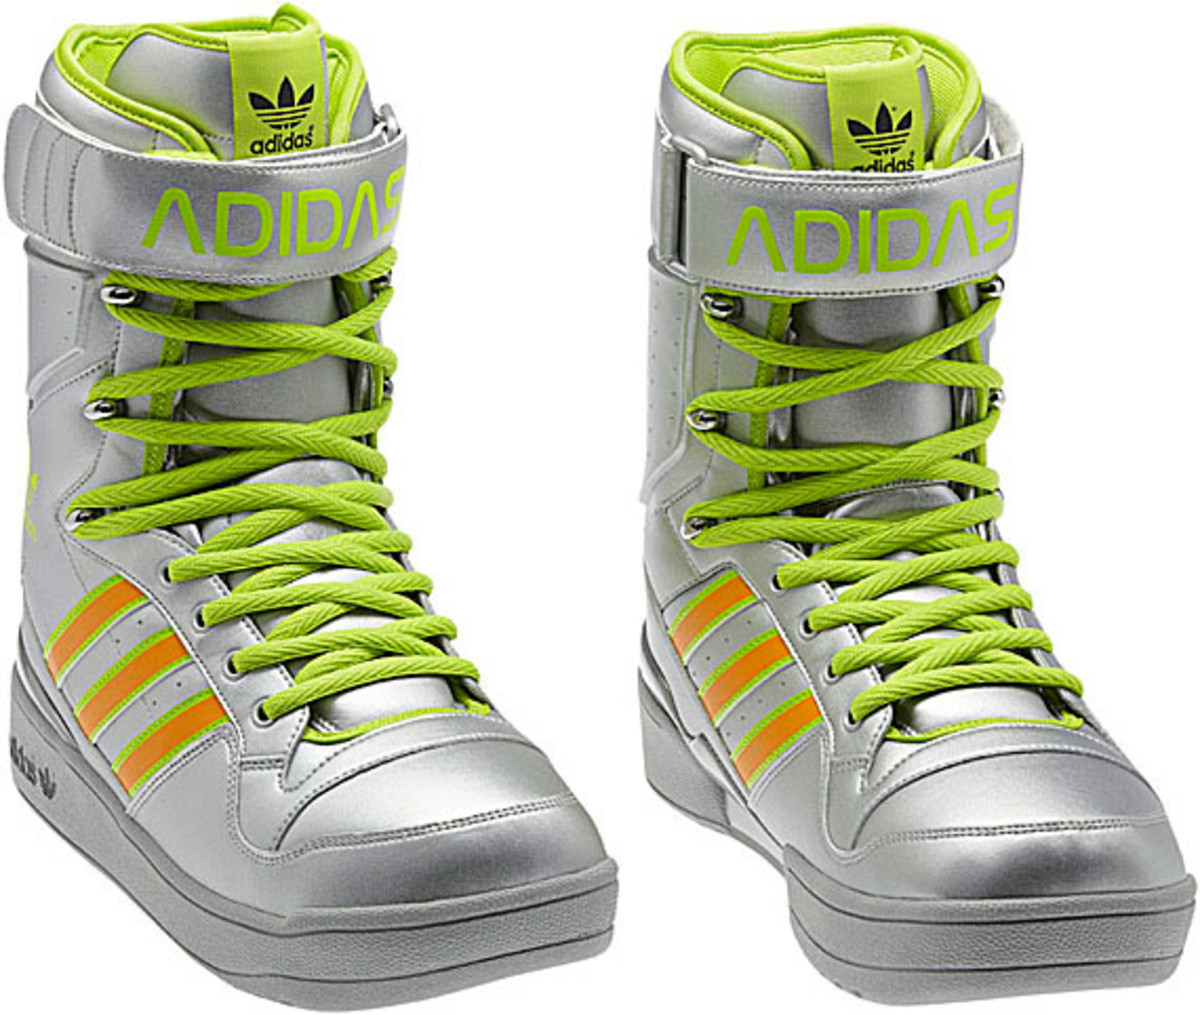 adidas-originals-jeremy-scott-footwear-collection-fall-winter-2012-19